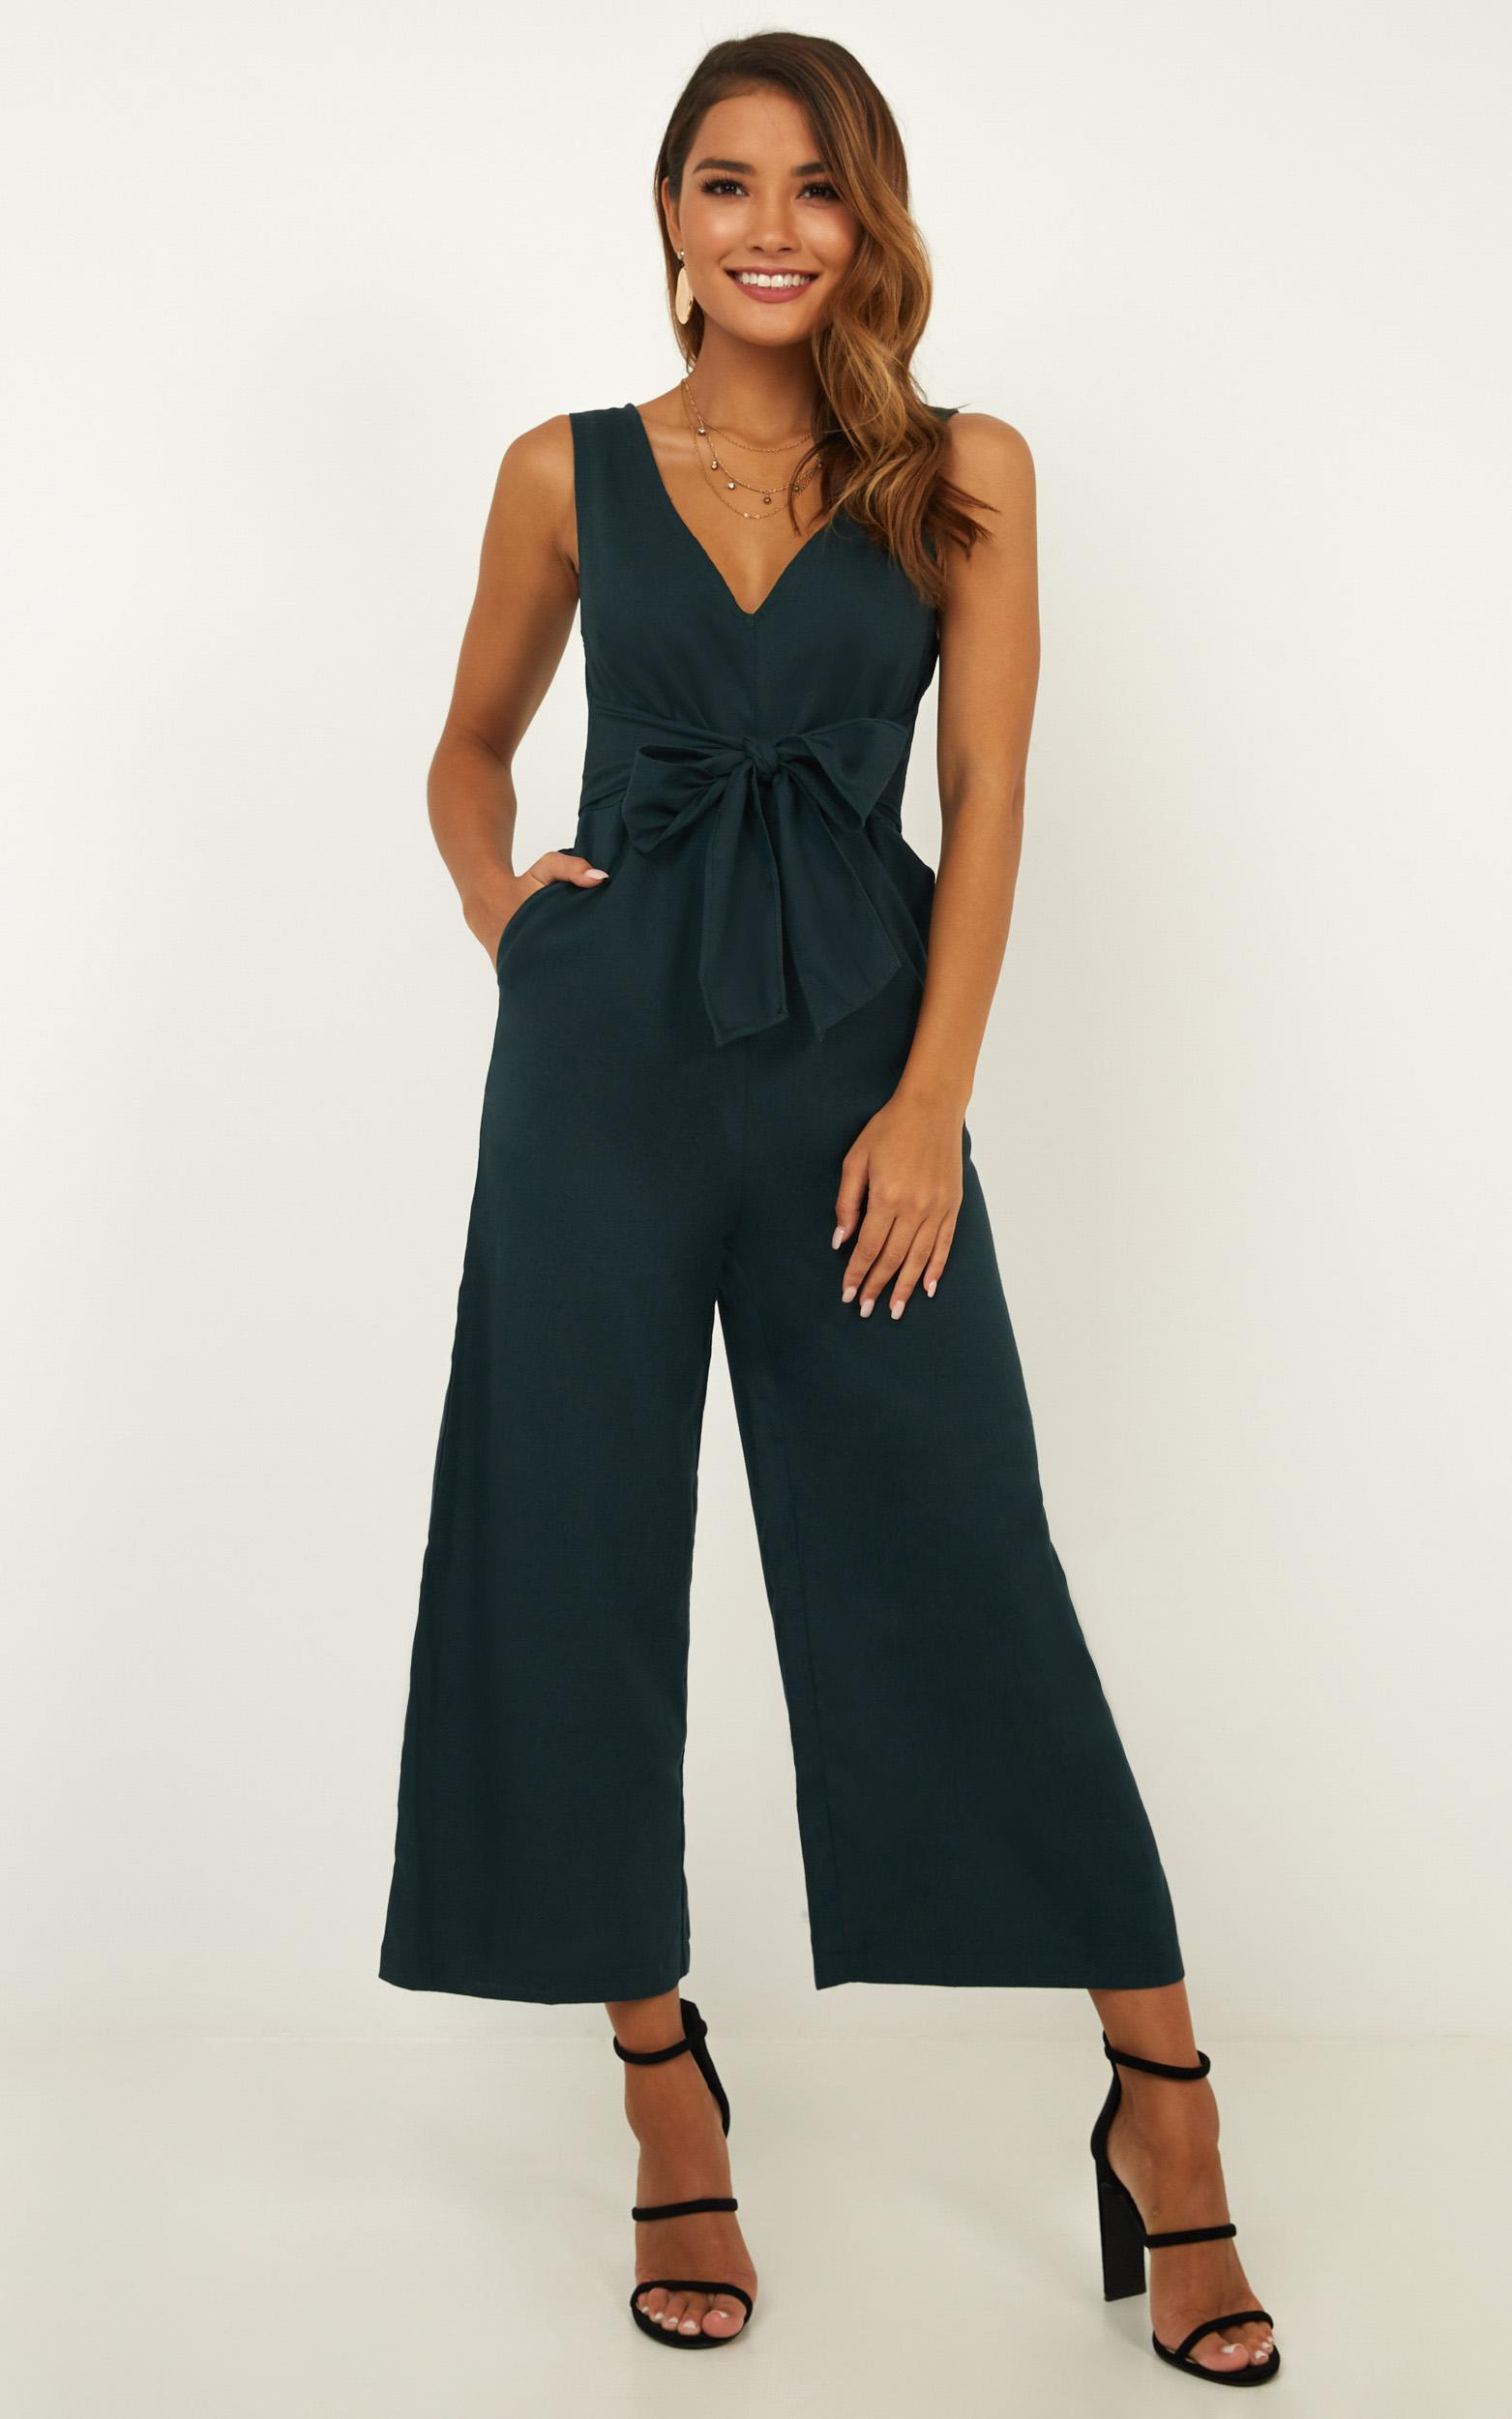 Run Free Jumpsuit in emerald - 20 (XXXXL), Green, hi-res image number null